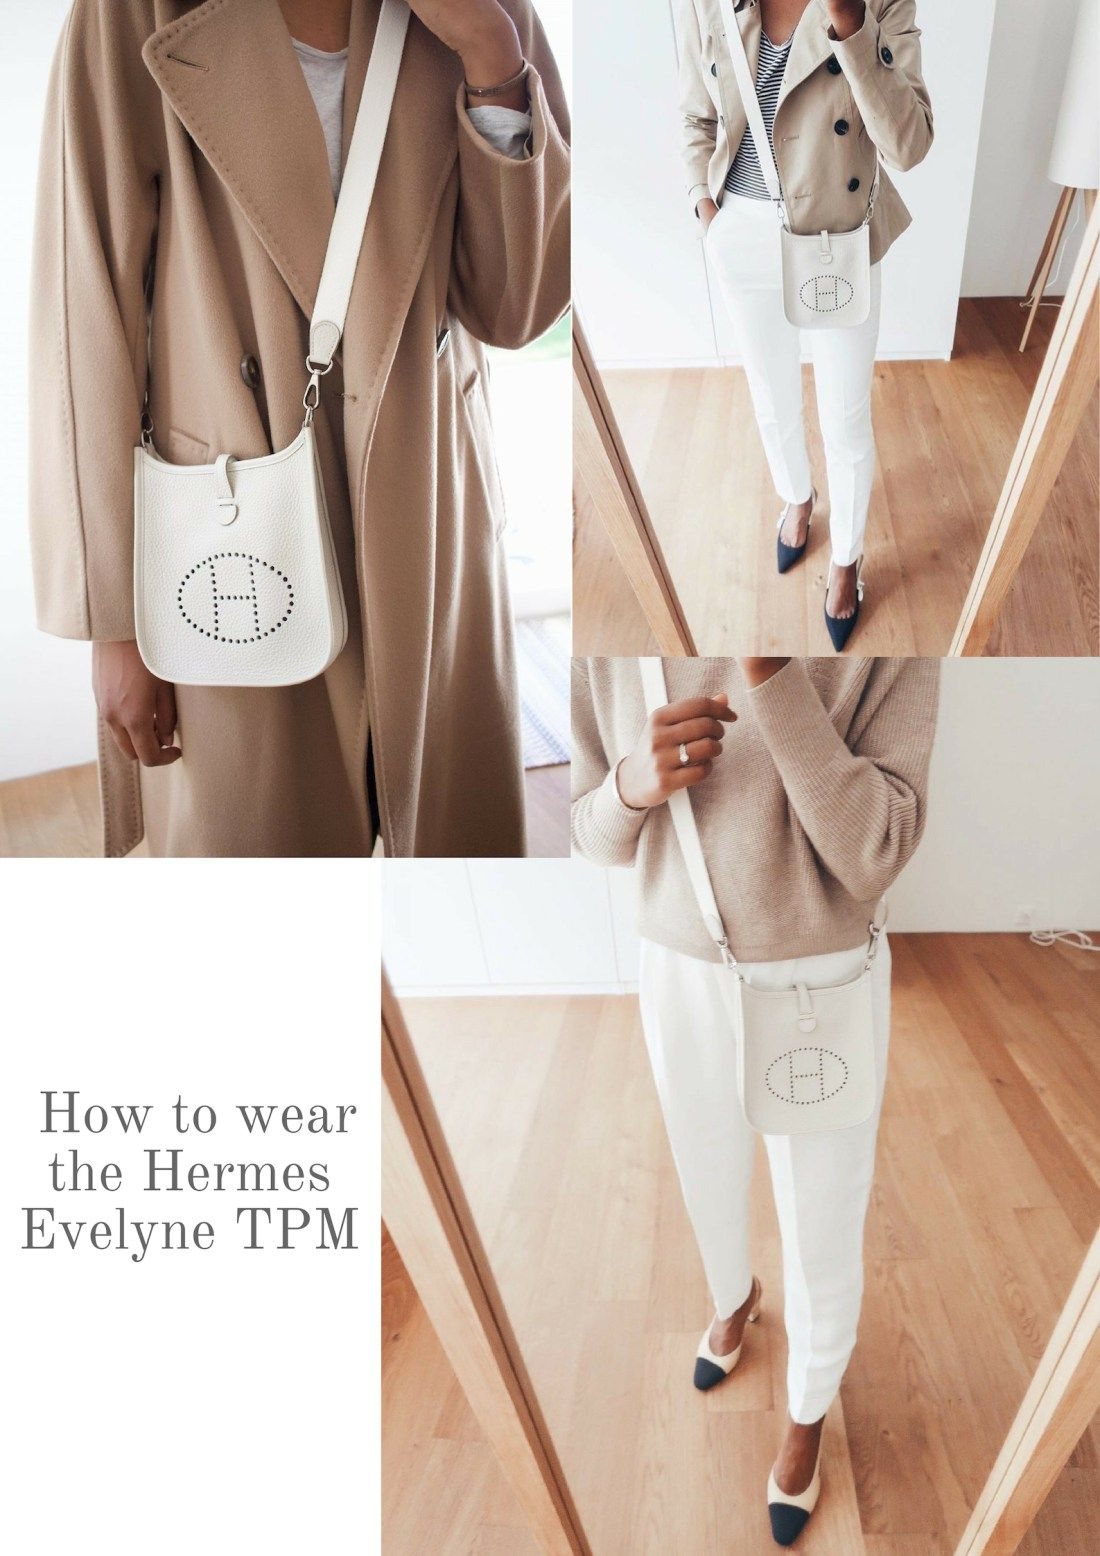 165de354e48 Hermes Evelyne TPM Review. How to wear the Hermes Evelyne. How to style Hermes  Evelyne mini. Classic outfits. Workwear outfits.